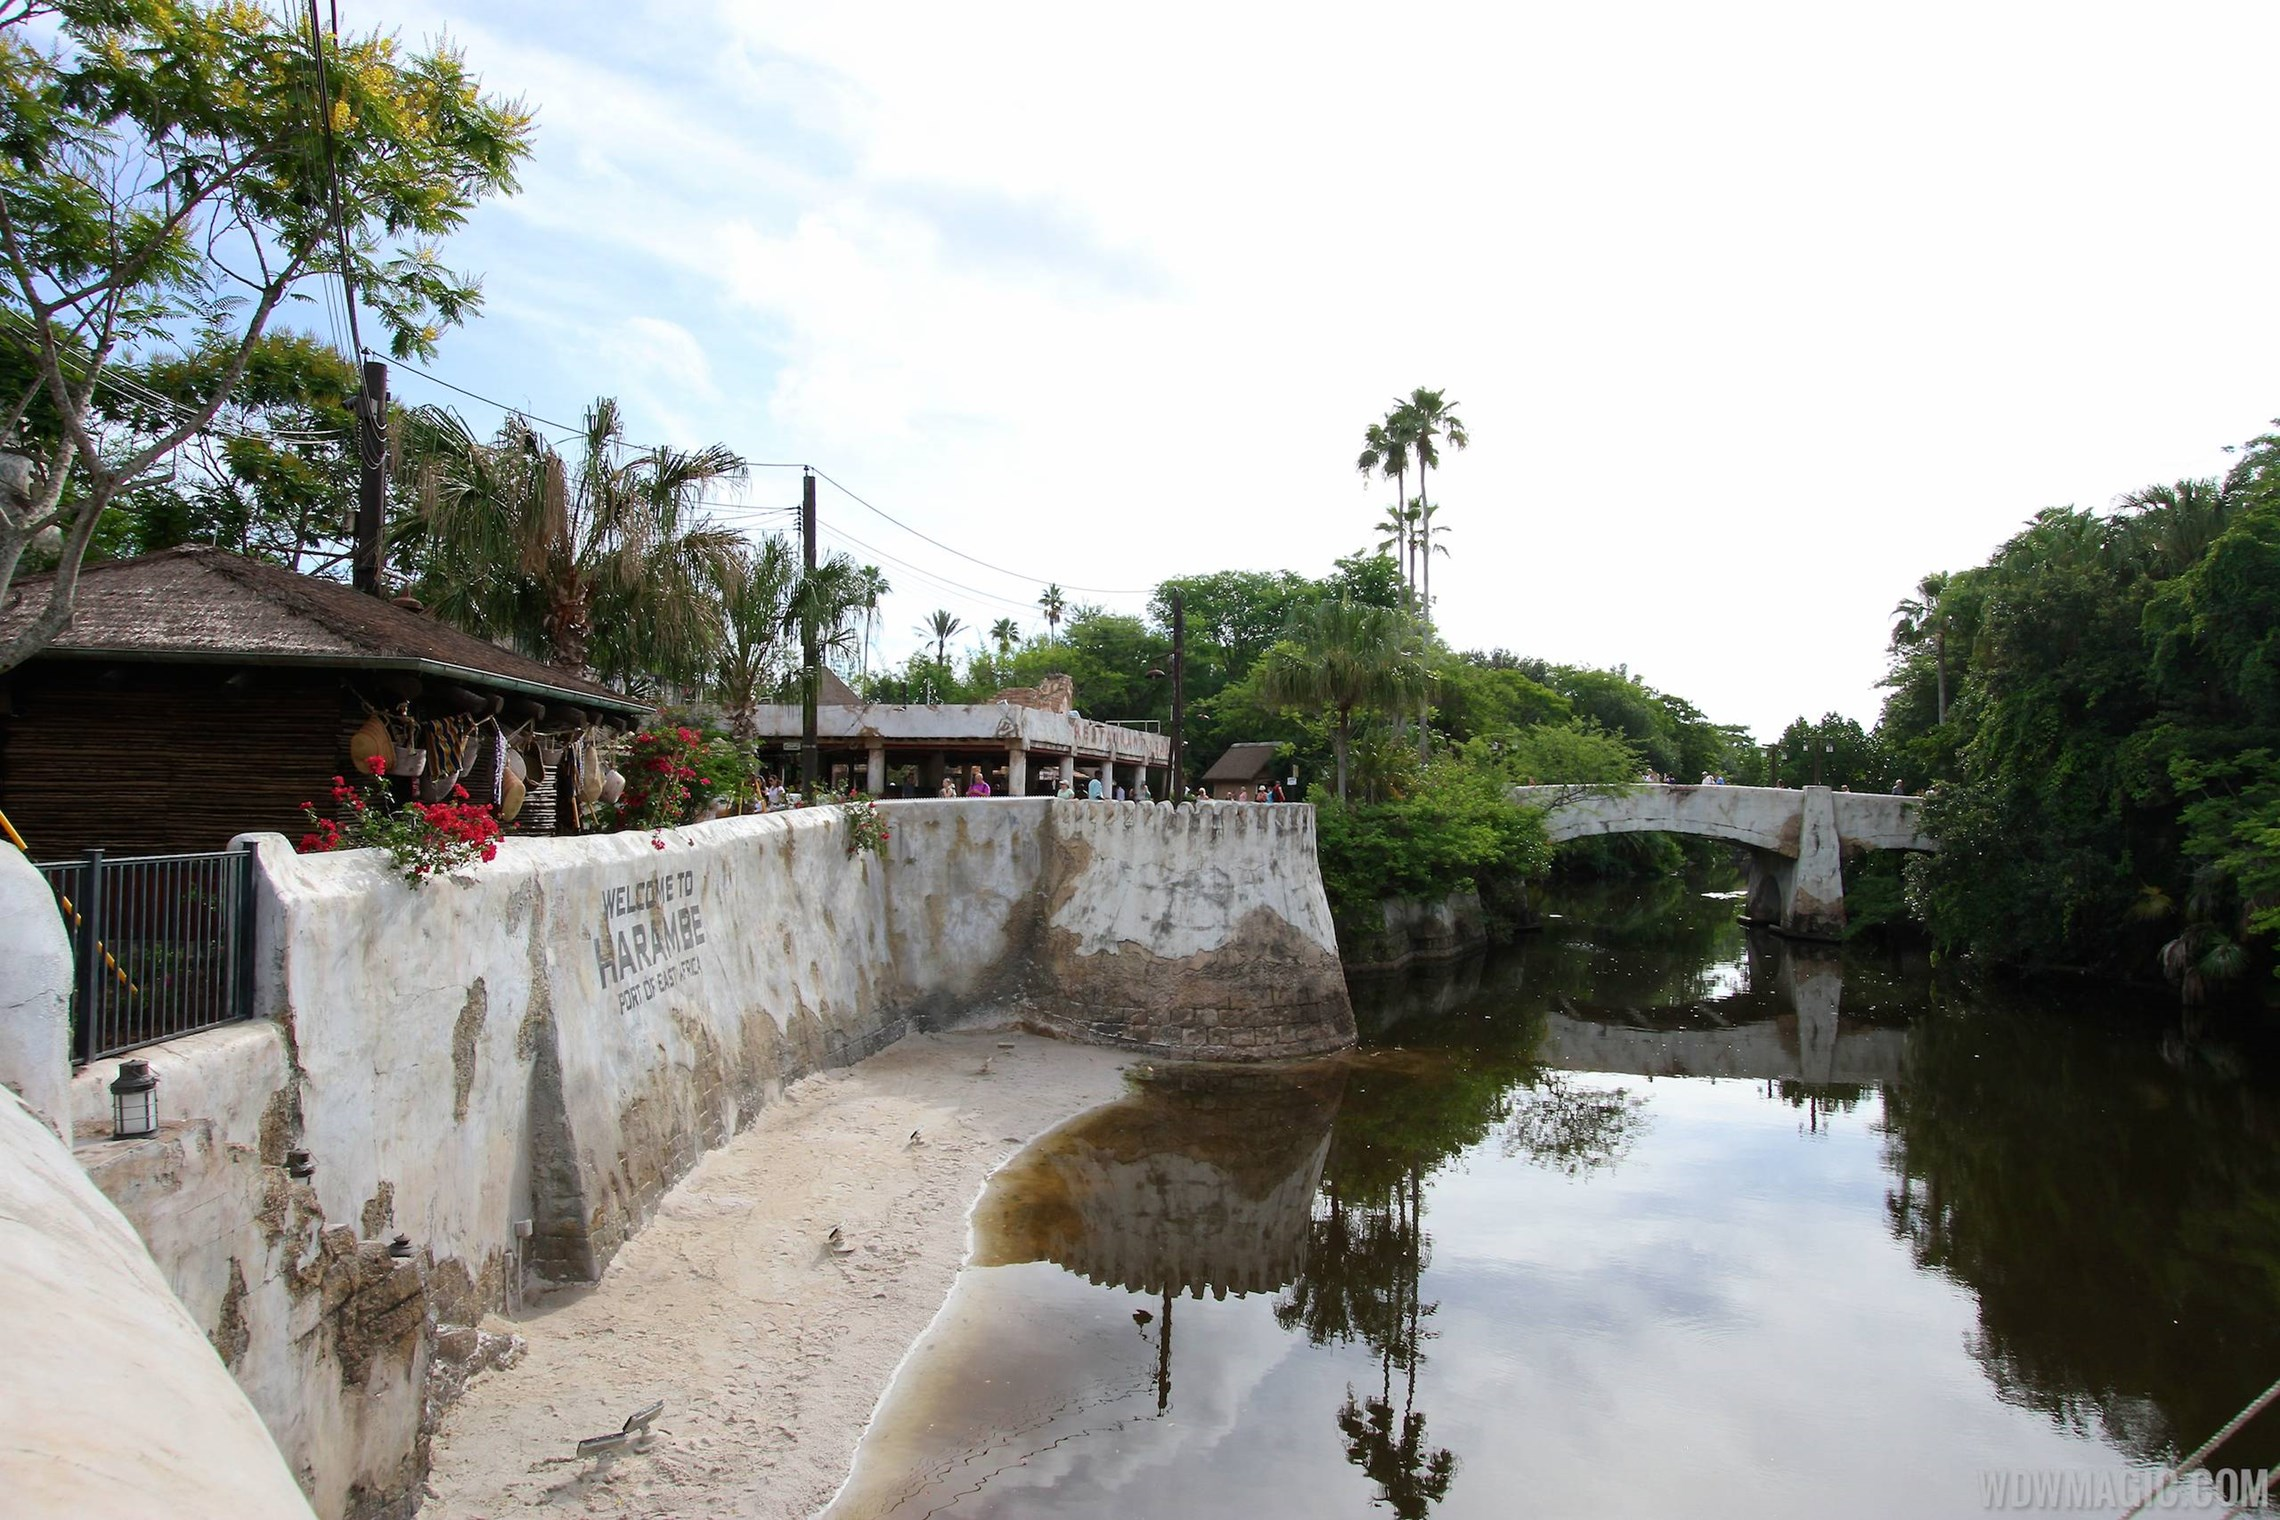 New Harambe Theater District